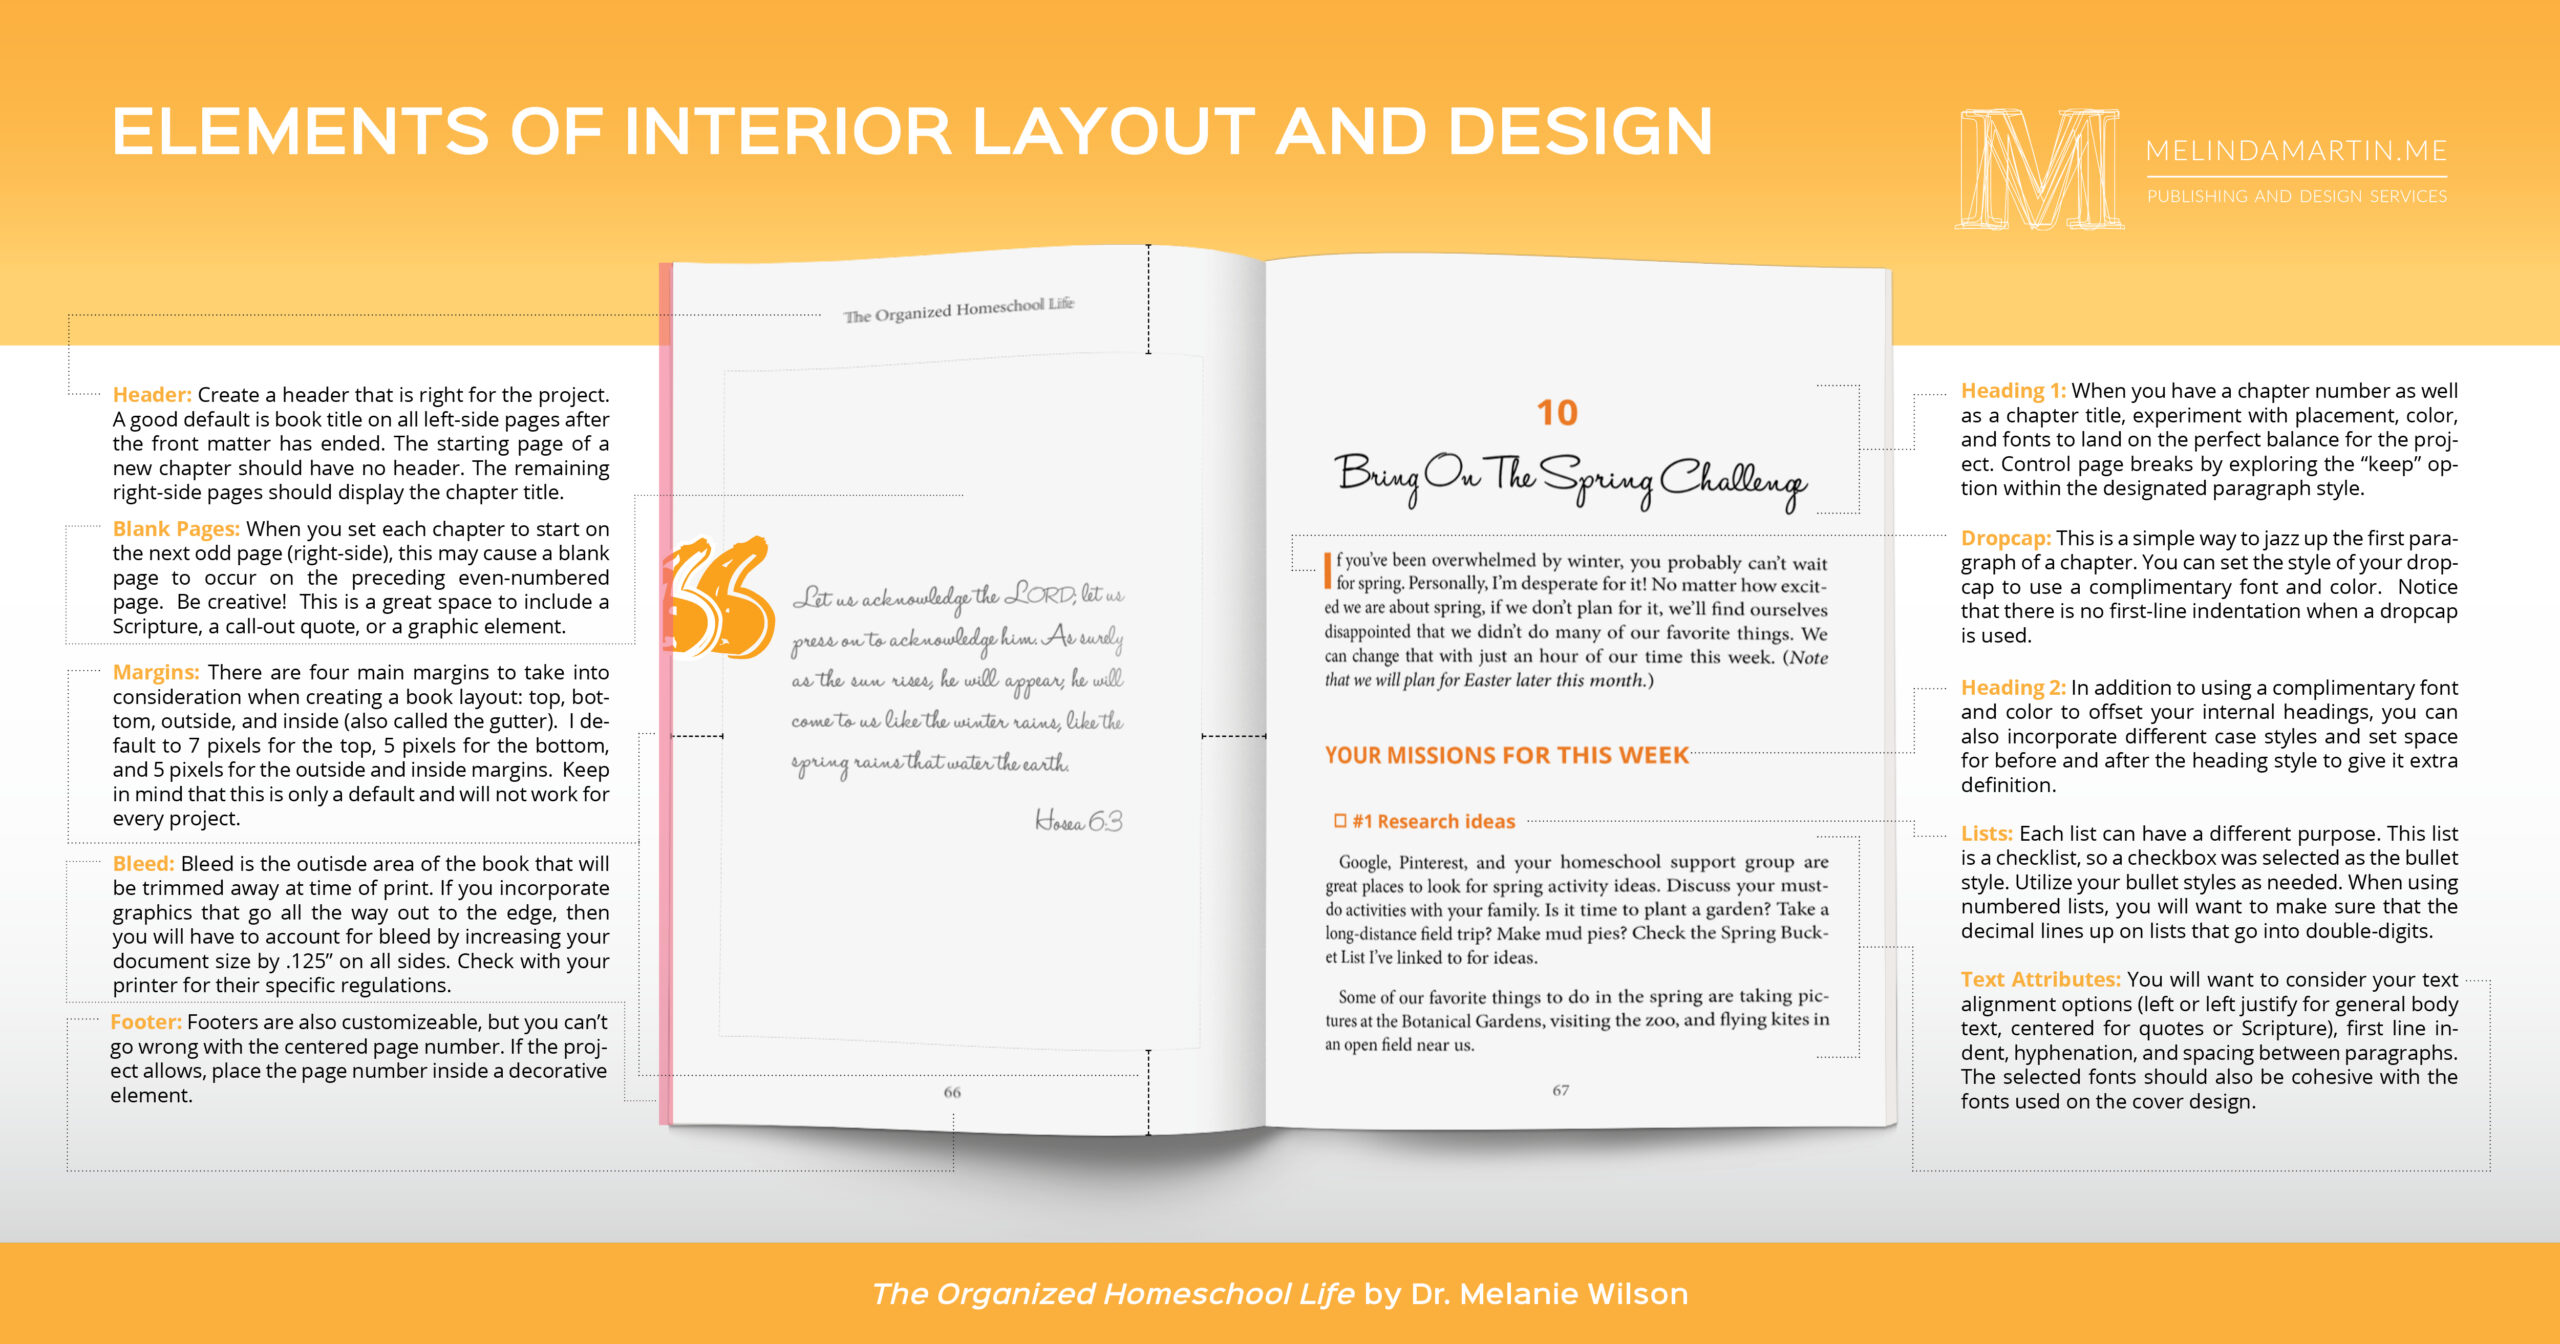 Elements of interior design and layout infographic for Elements of interior design